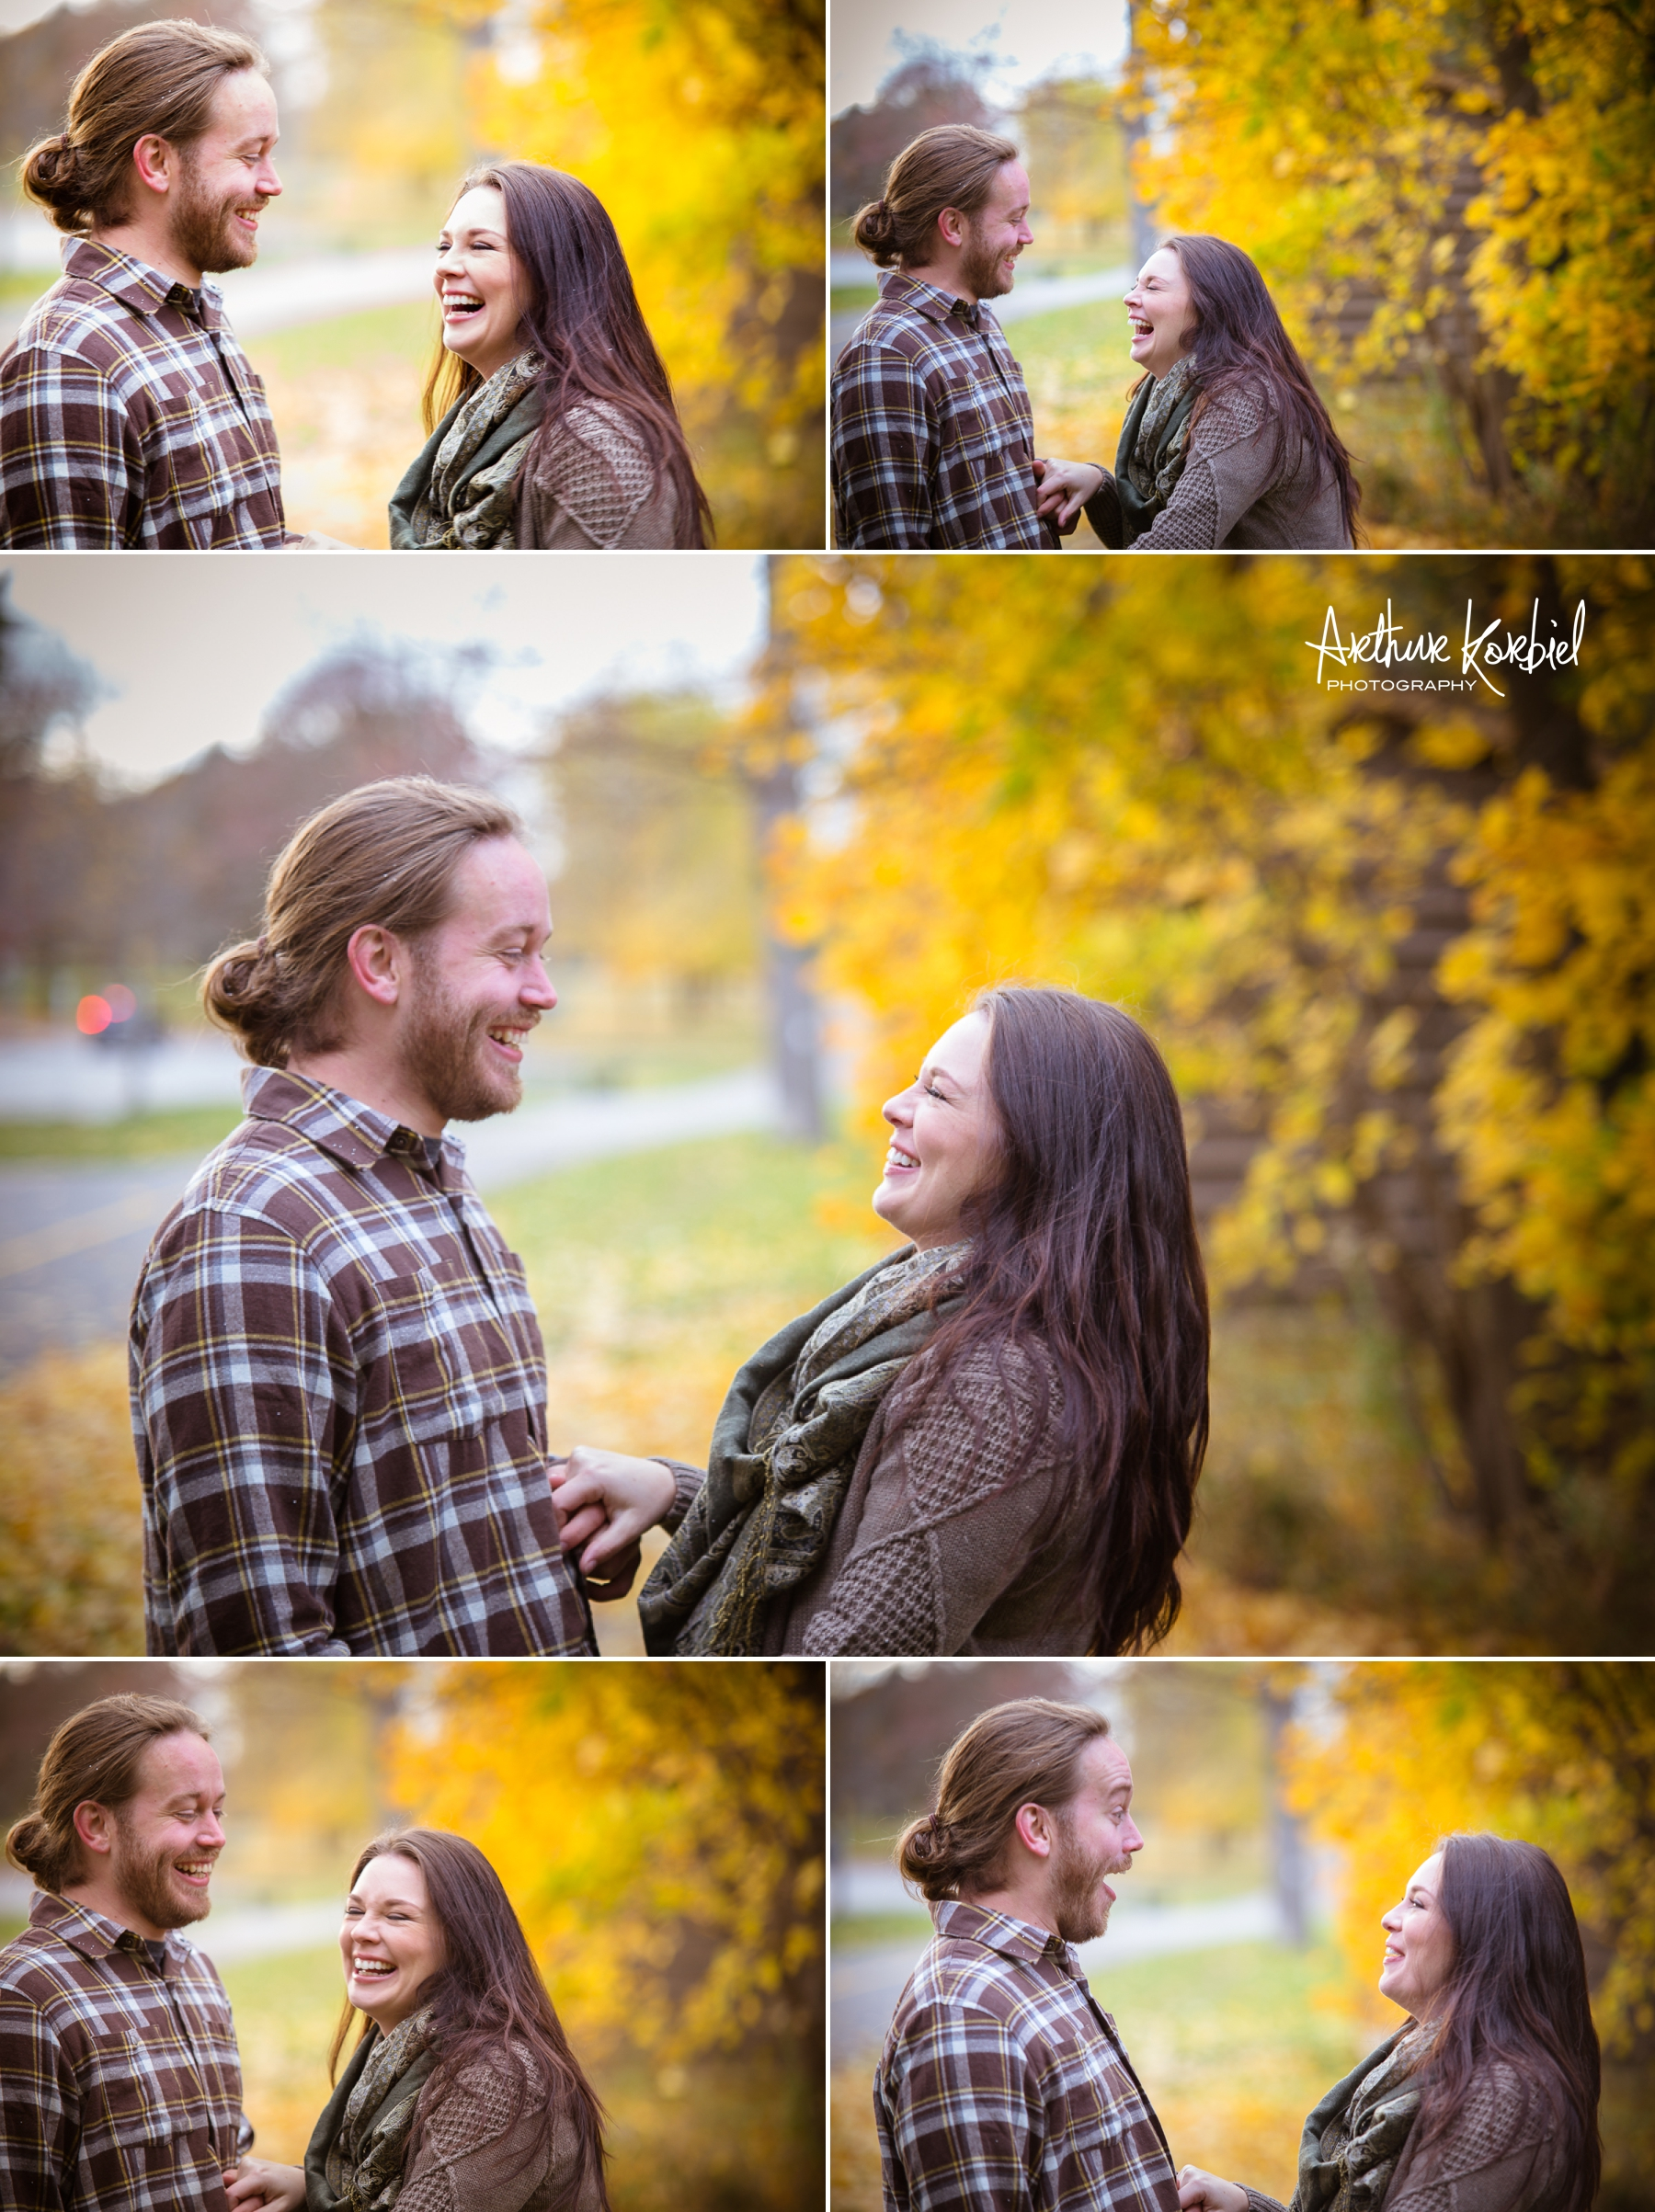 Arthur Korbiel Photography - London Engagement Photographer - Heather & Addison_005.jpg